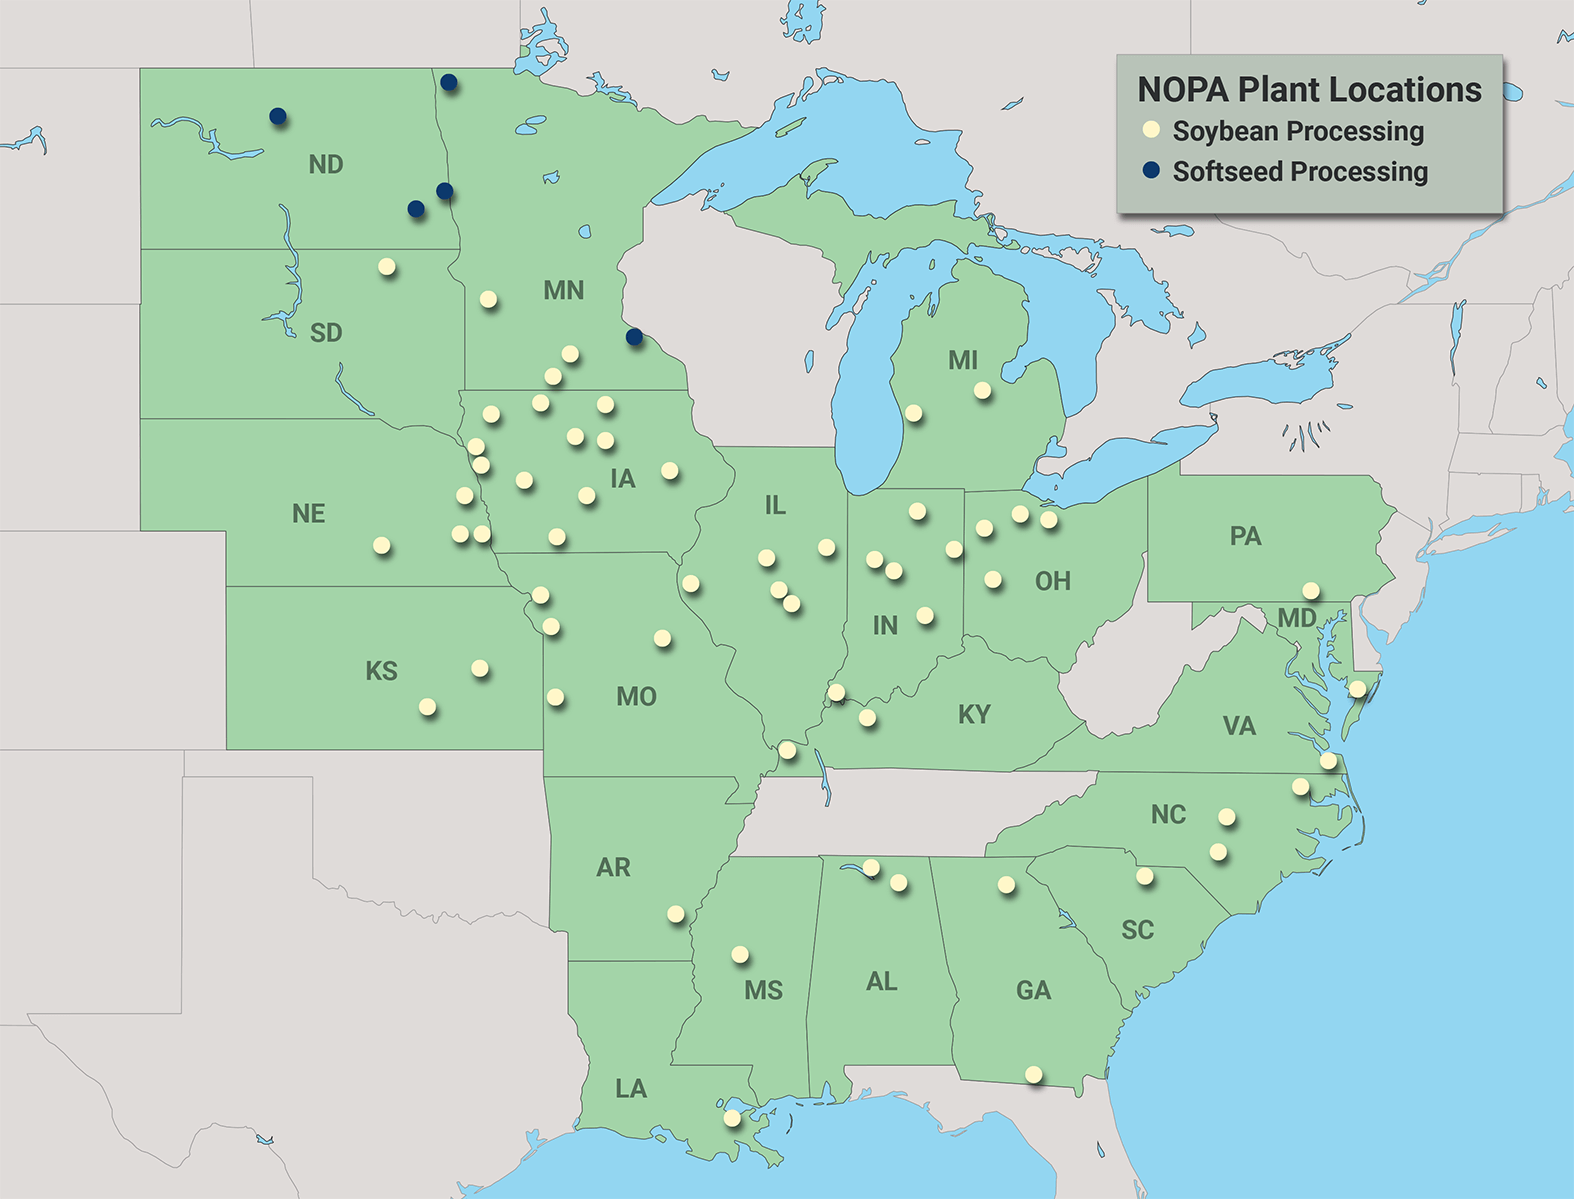 Map with NOPA locations indicated